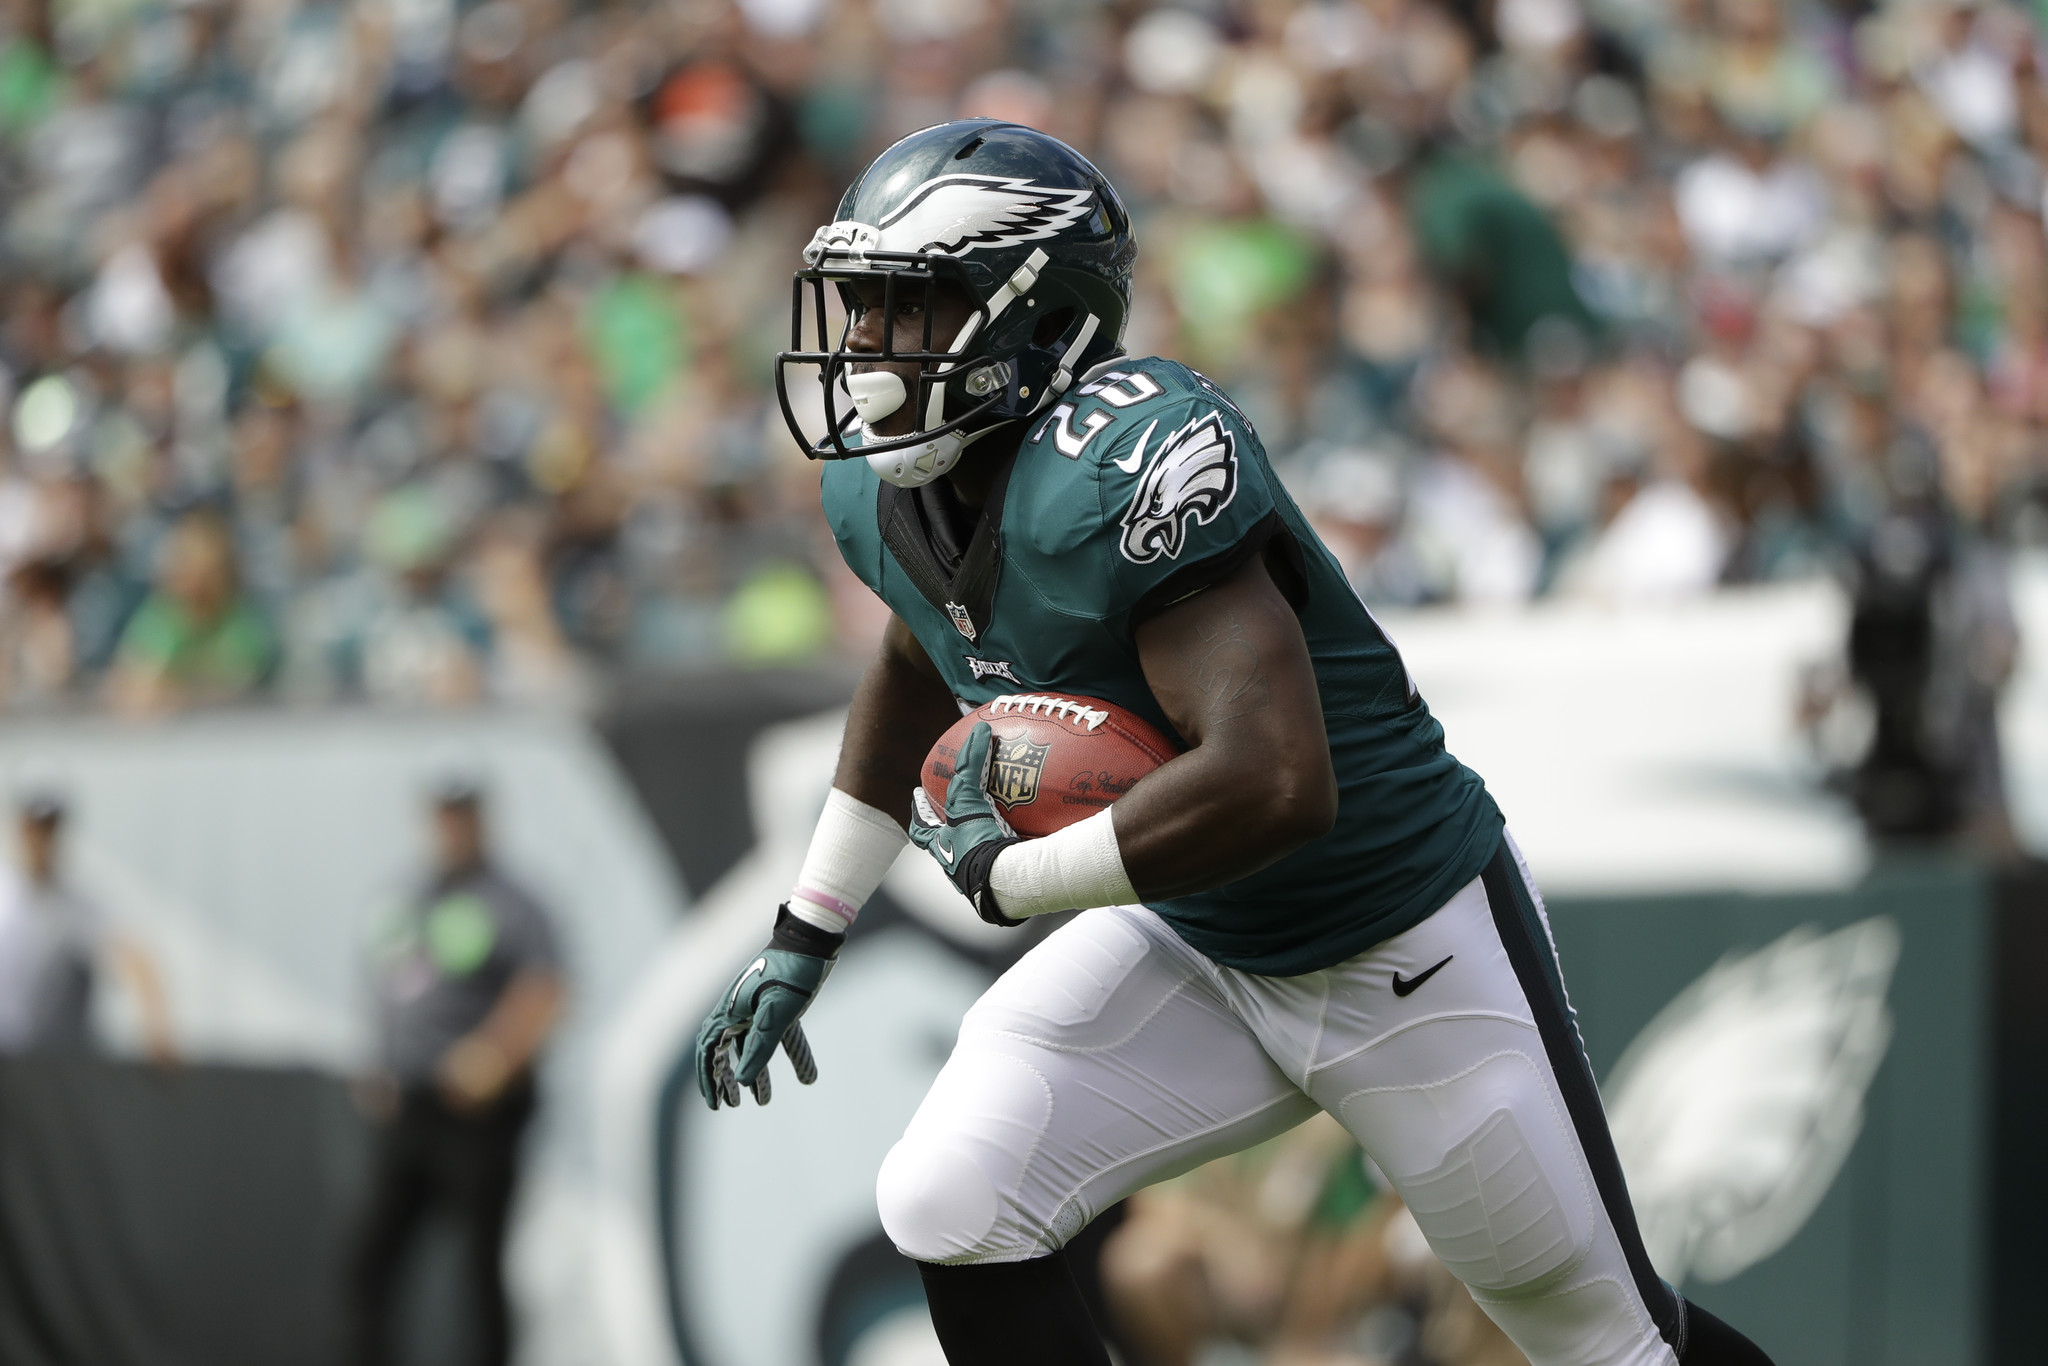 Mc-monday-morning-quarterback-five-takeaways-from-eagles-blowout-victory-over-steelers-20160926